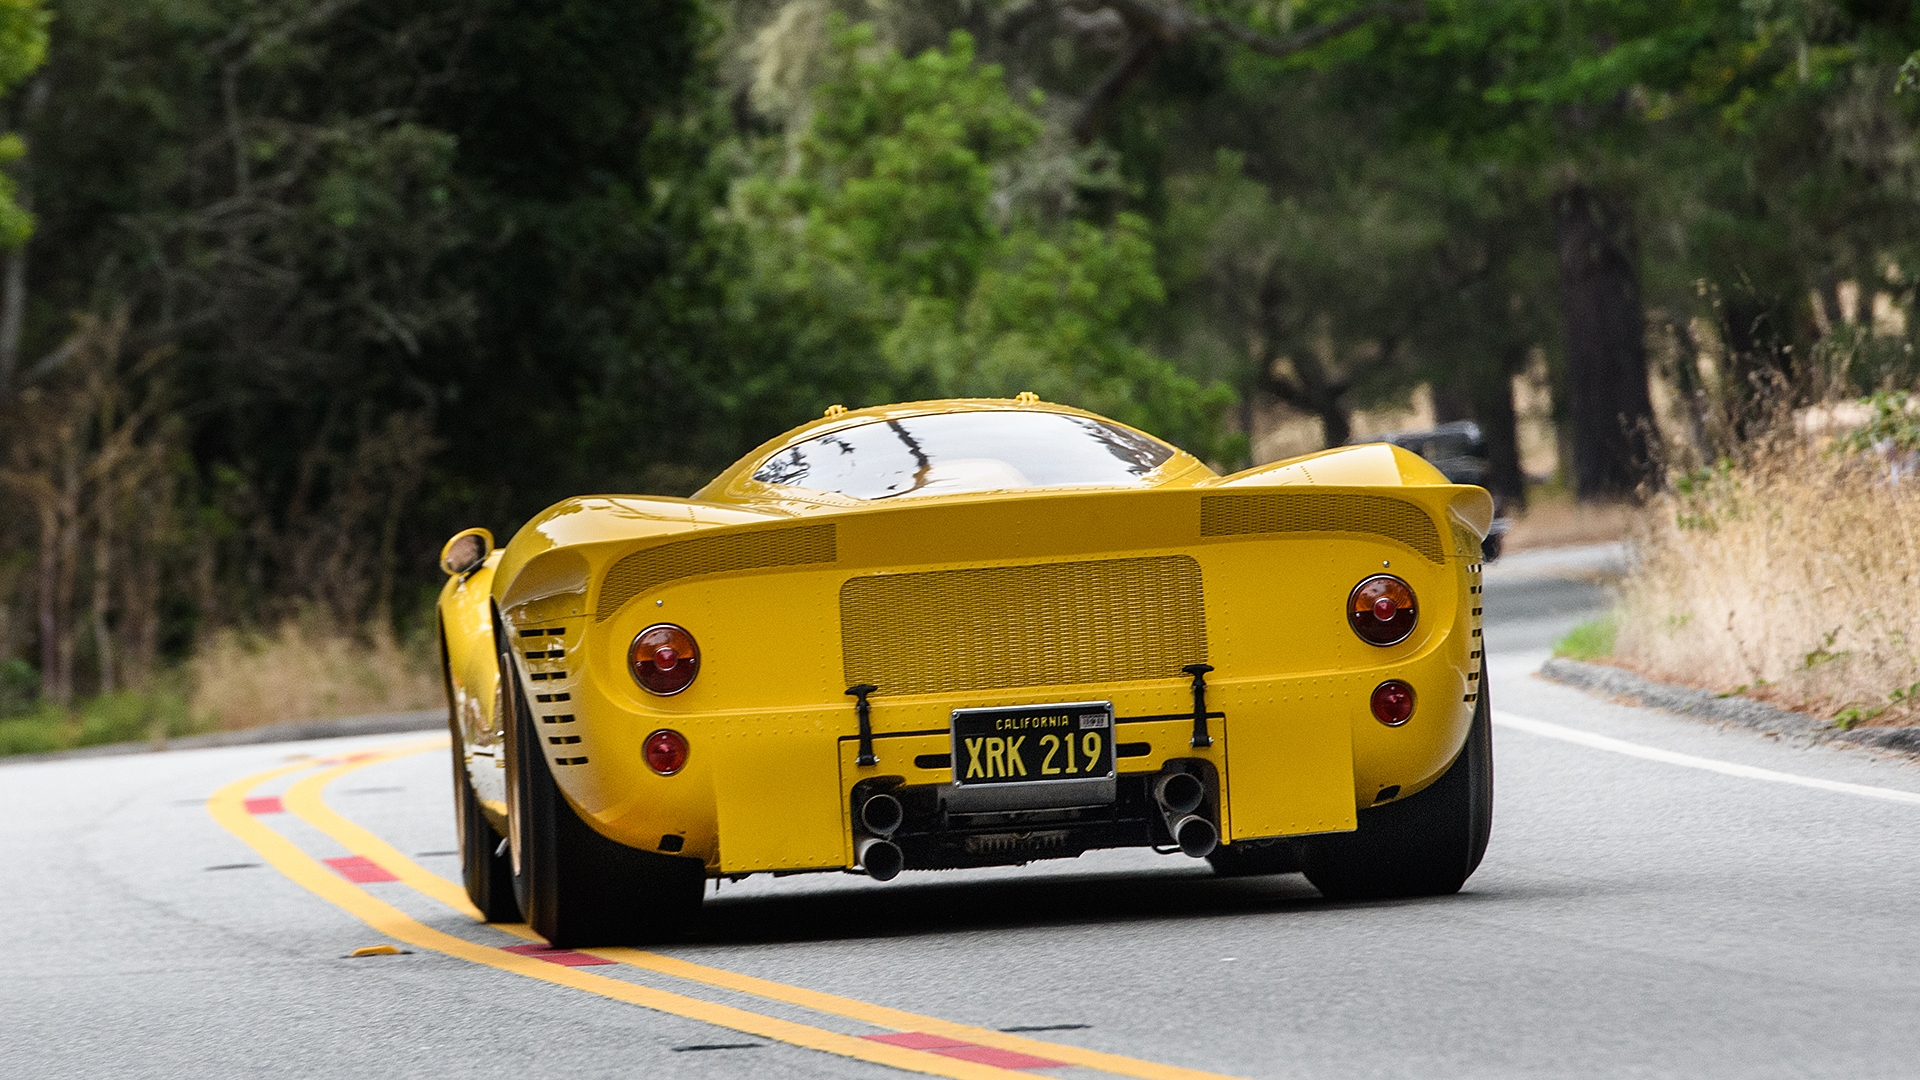 Monterey 2017: The Tour d'Elegance and news from the salerooms